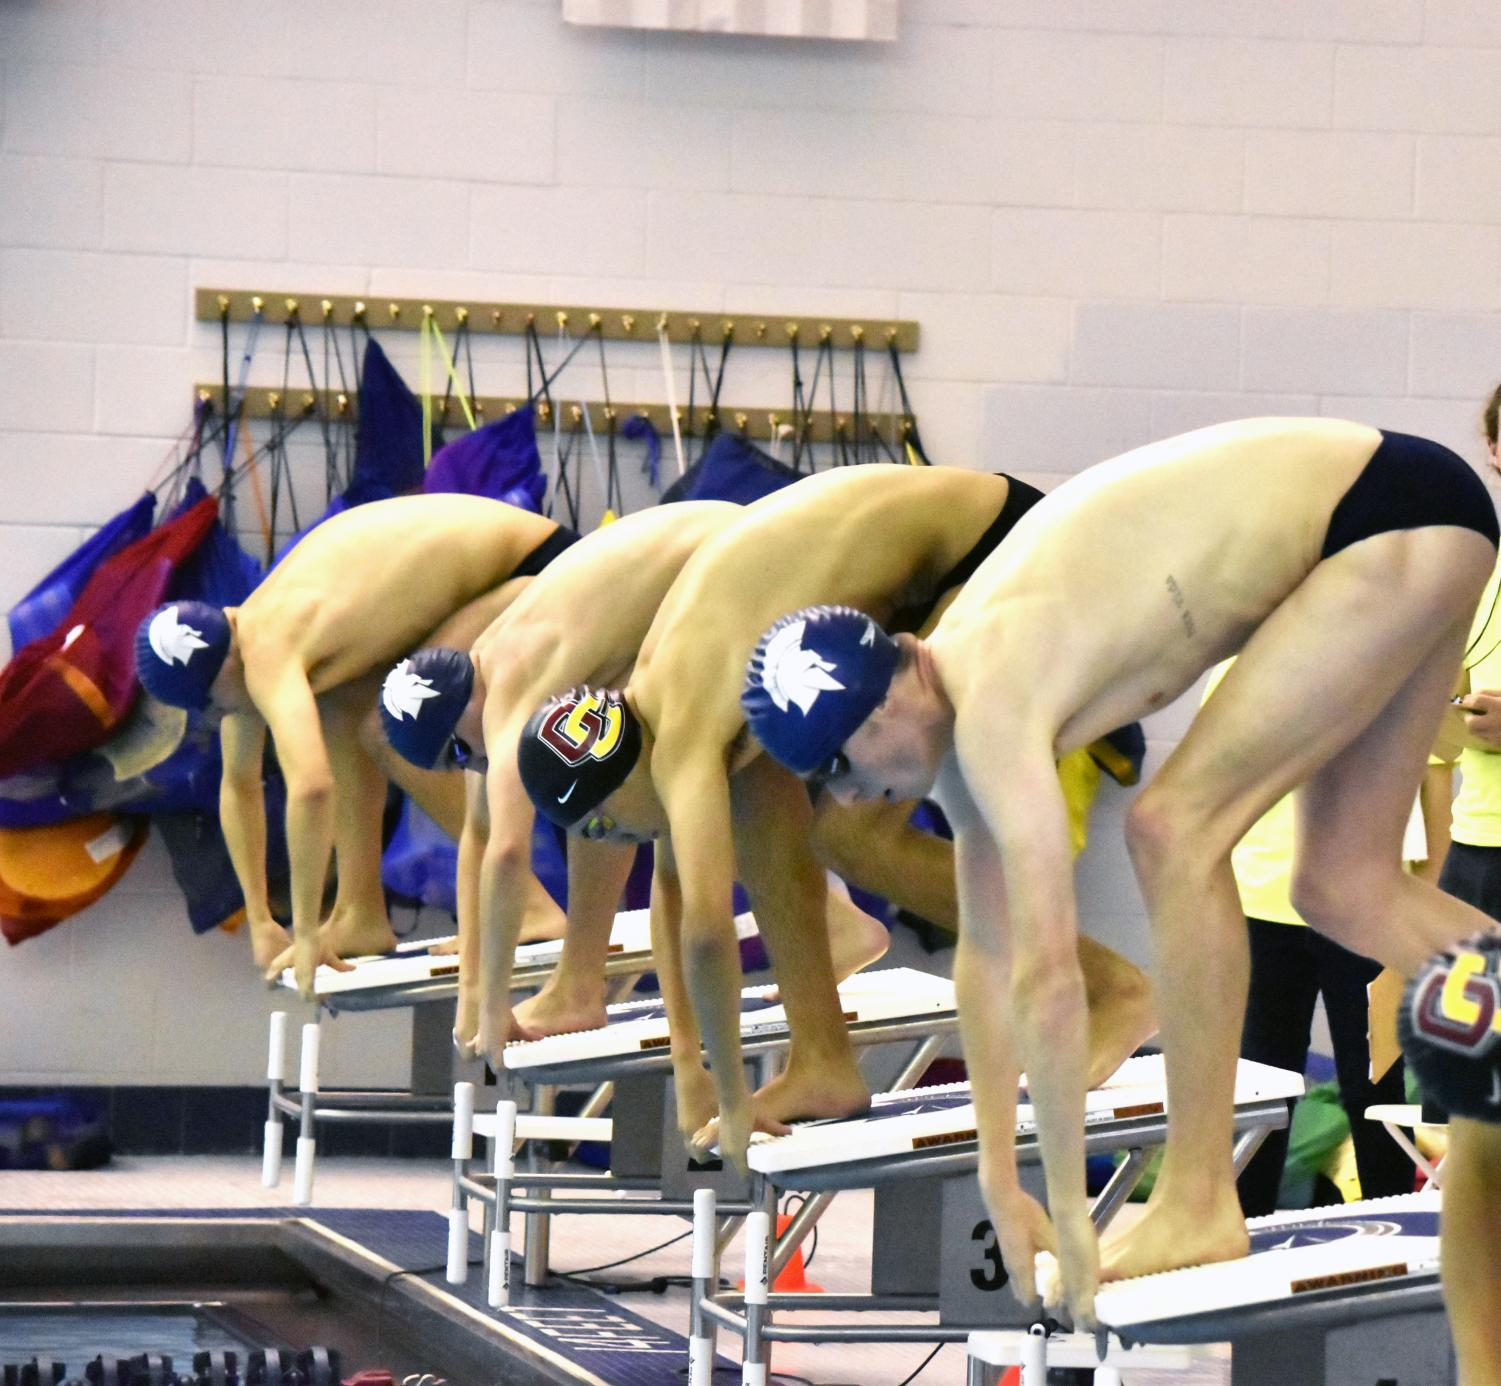 Men's and women's swimming sent a contigent of six swimmers to compete in the NCAA Division III championships. The women sent a record of five swimmers, which was the most CWRU has sent since 2003.